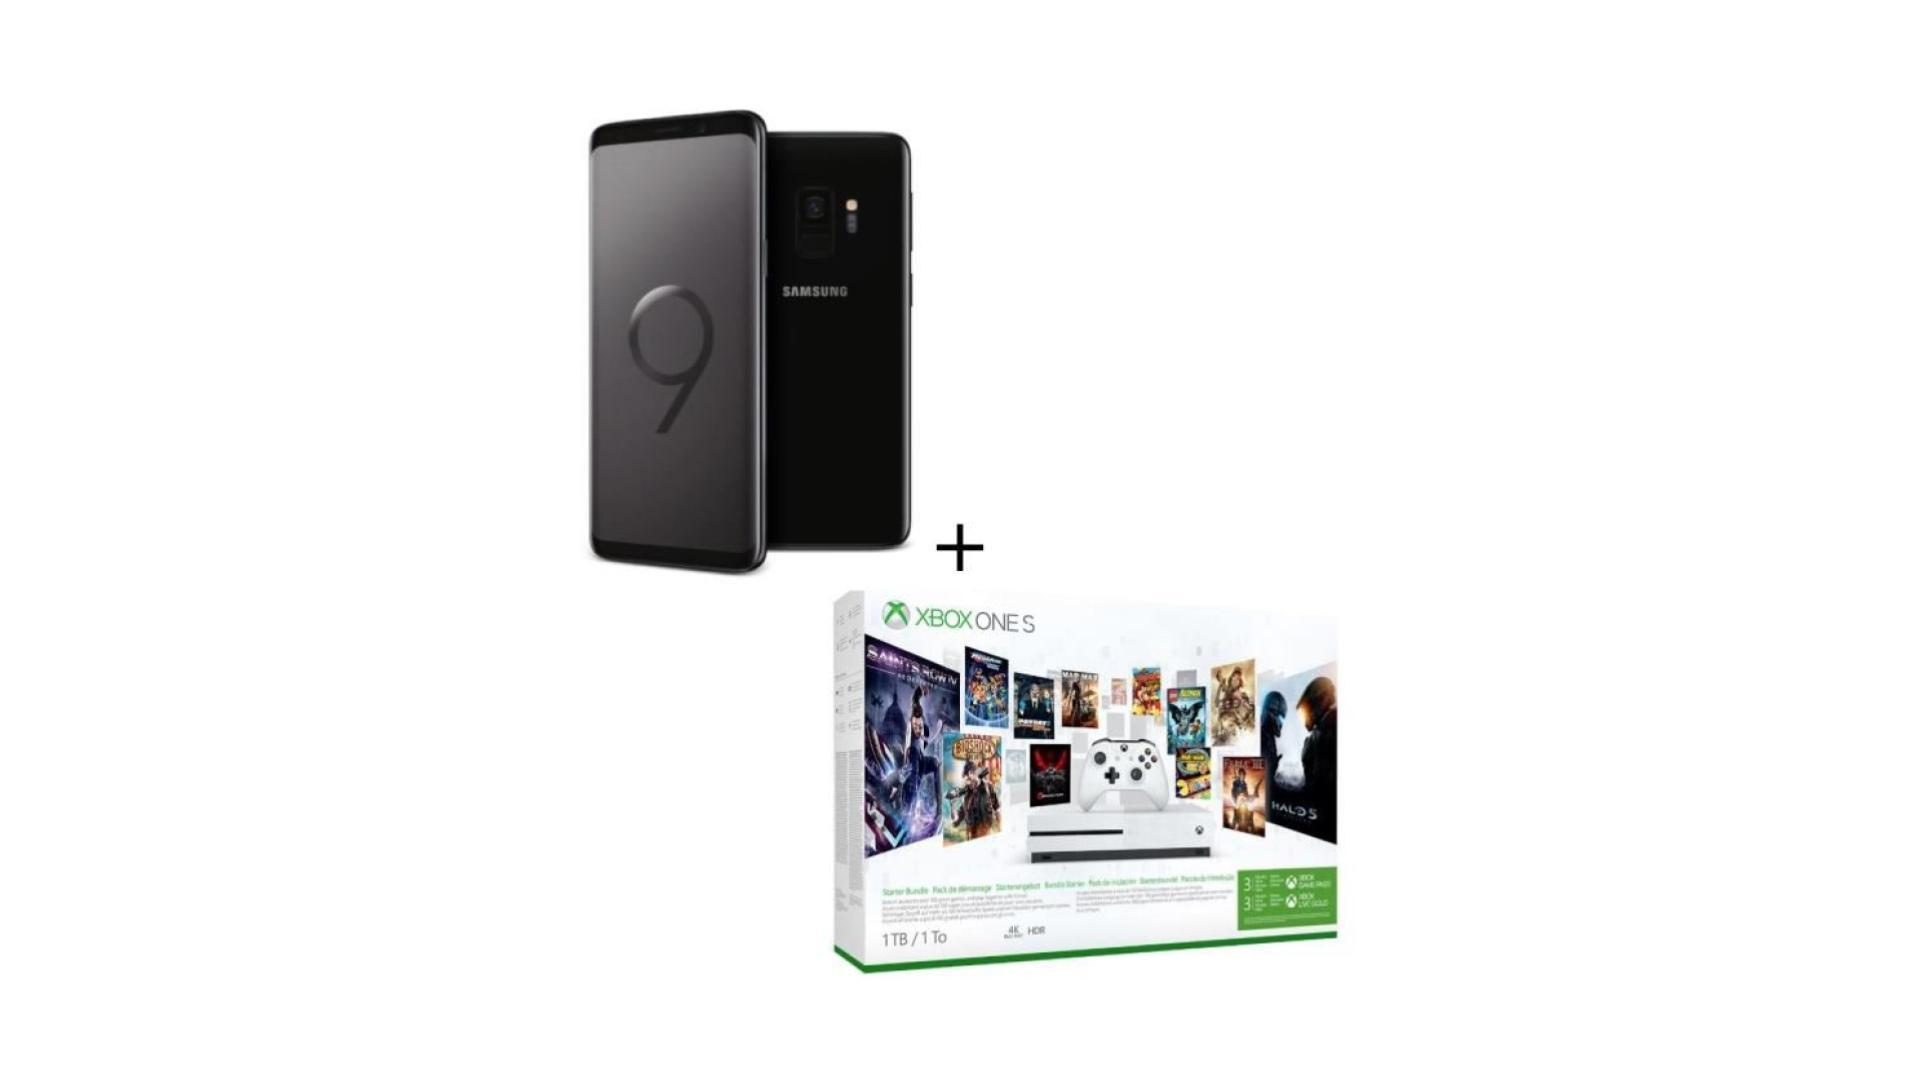 Le pack sympa en promo : Galaxy S9 + Microsoft Xbox One S (1 To) Game Pass + 3 mois de Xbox Live